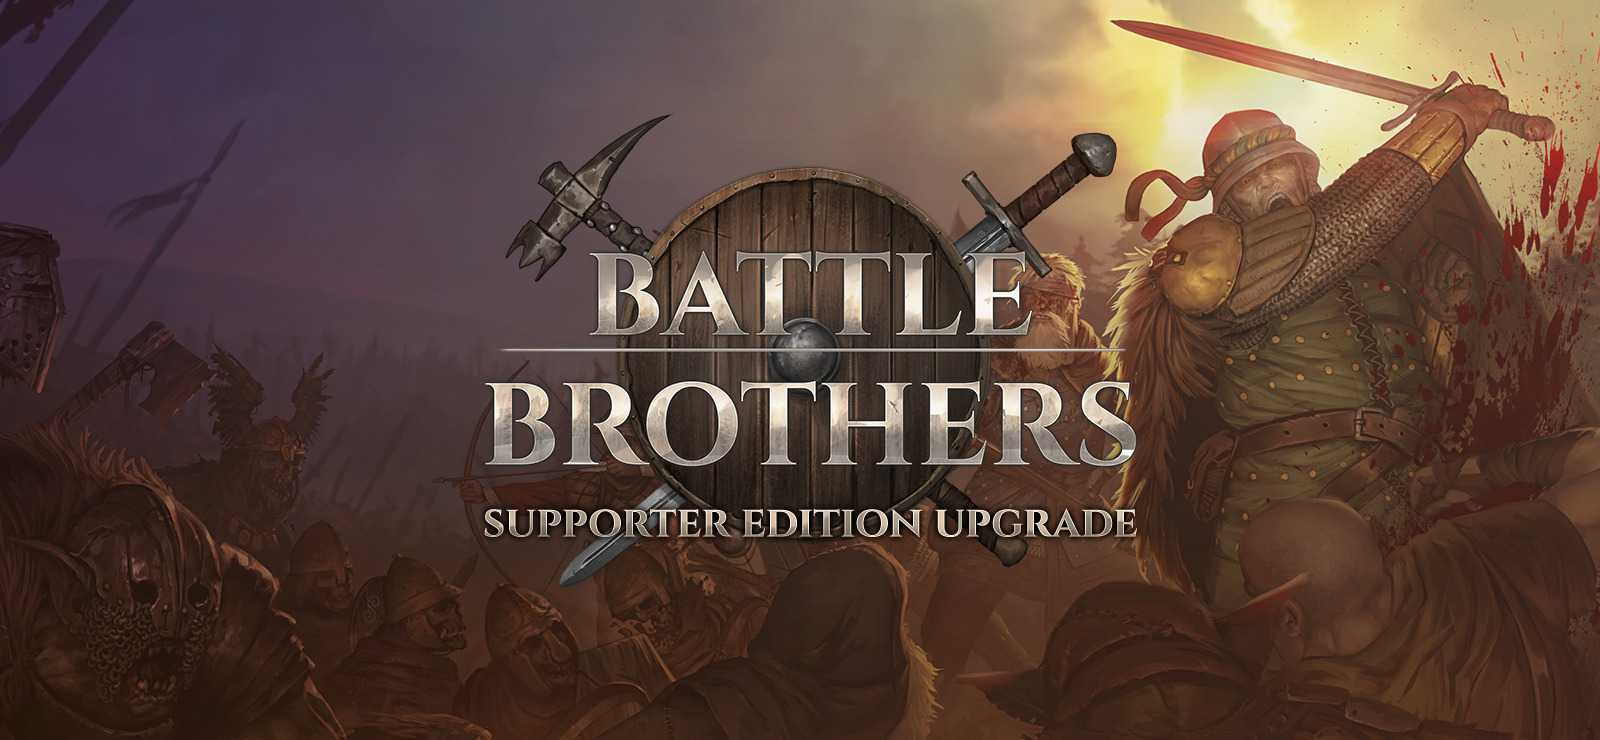 Battle Brothers - Supporter Edition Upgrade